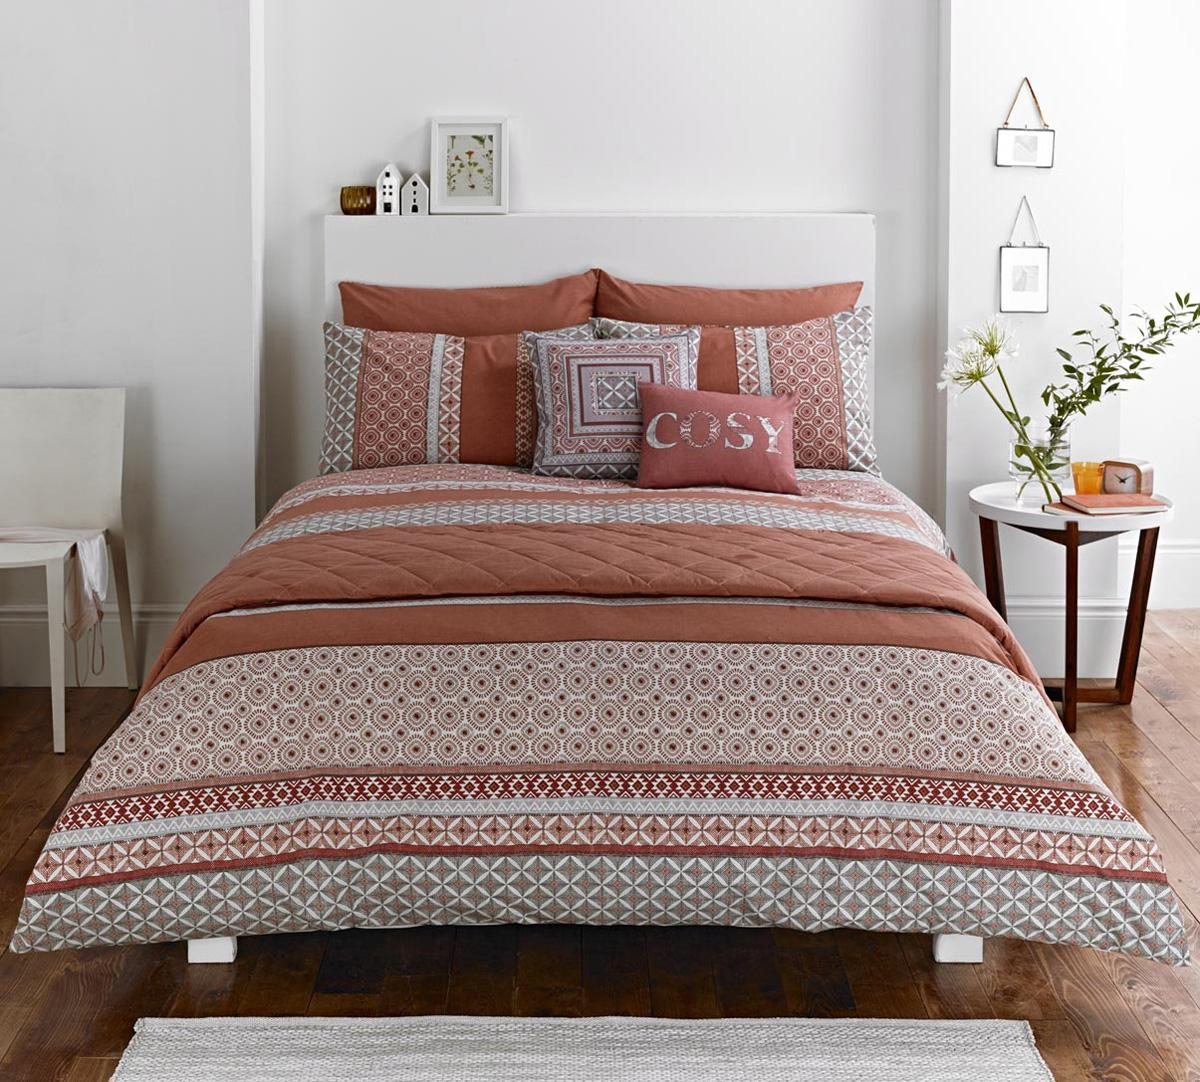 geometric shapes duvet covers  bedding and duvet covers  terrys  - kalisha bedding set